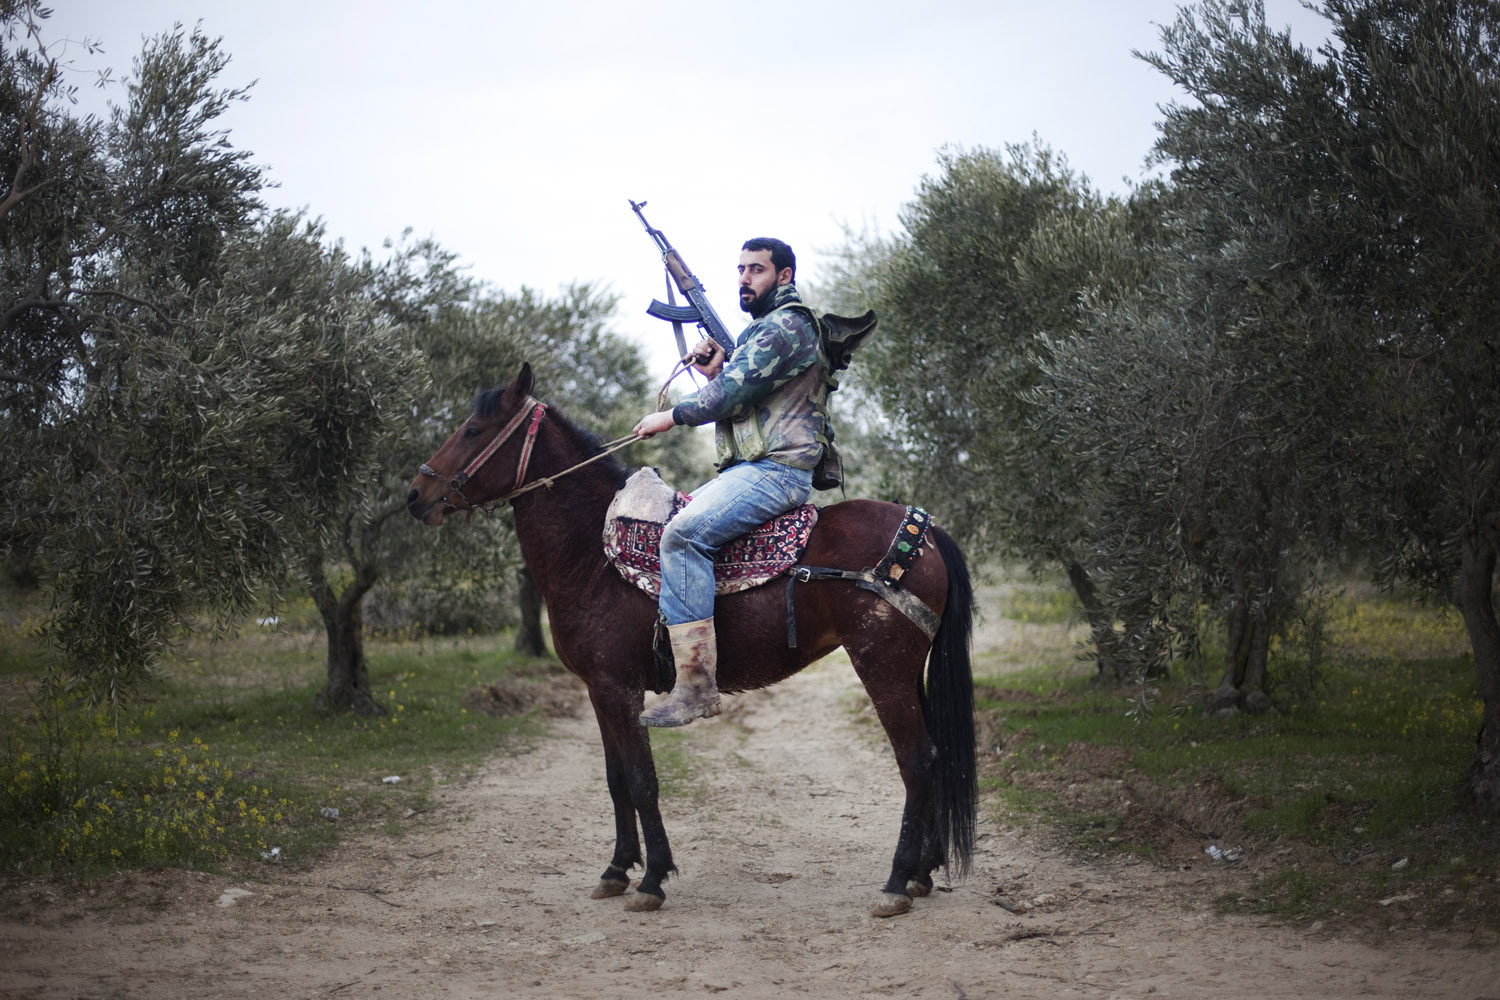 Giorgos Moutafis                                Shortly after entering al-Shatouria village, I met a group of FSA fighters in a grove of olive trees. There were about 10 men — just three of them were armed. They told me that they were planning on going back to the mountains close to the Turkish borders until they could better reorganize. I felt their depressed psychology and could sense their disappointment. Suddenly, one of them climbed up on his horse, holding his gun, and posed proudly in front of me.